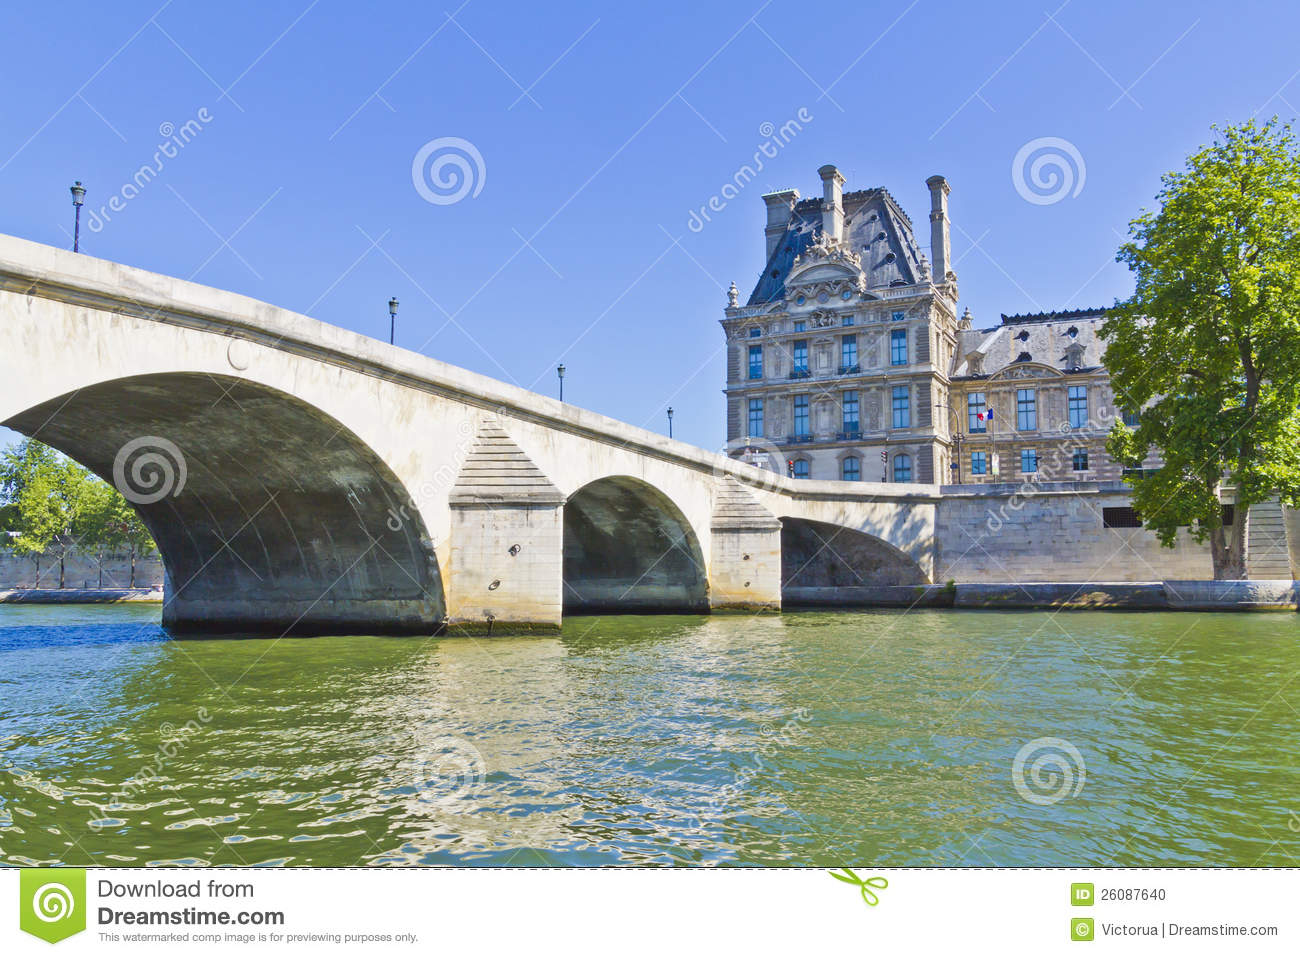 Pont Du Carrousel Paris France Stock Photos, Images, & Pictures.